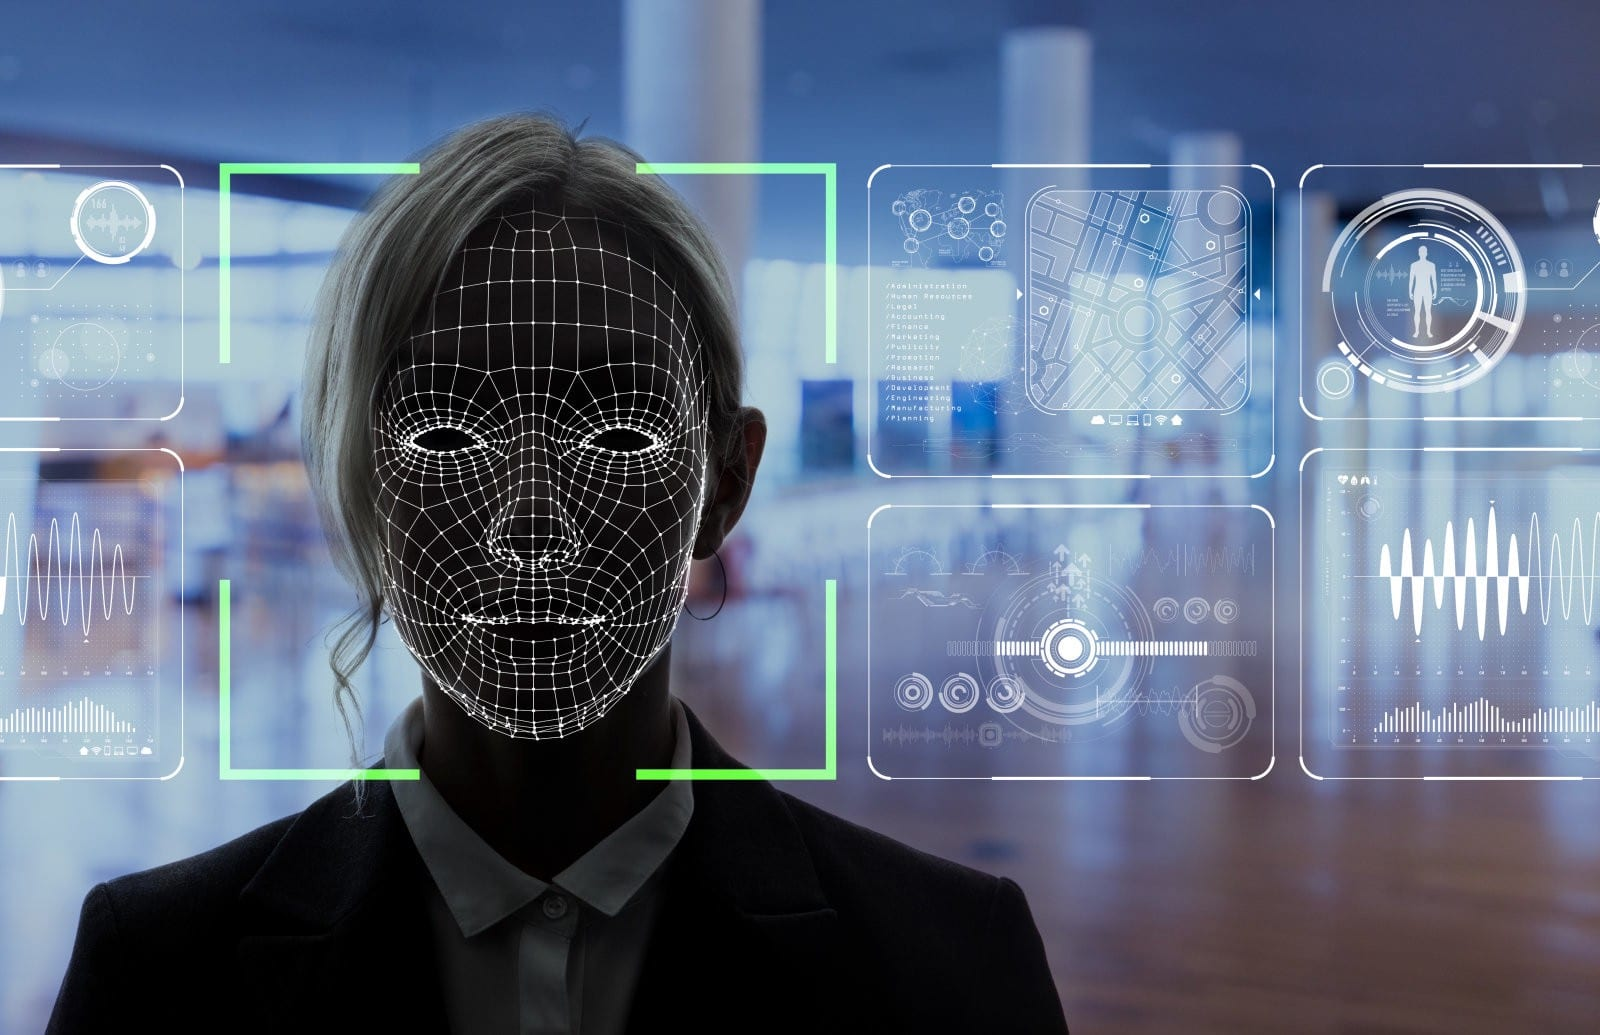 Biometric facial recognition to verify identity